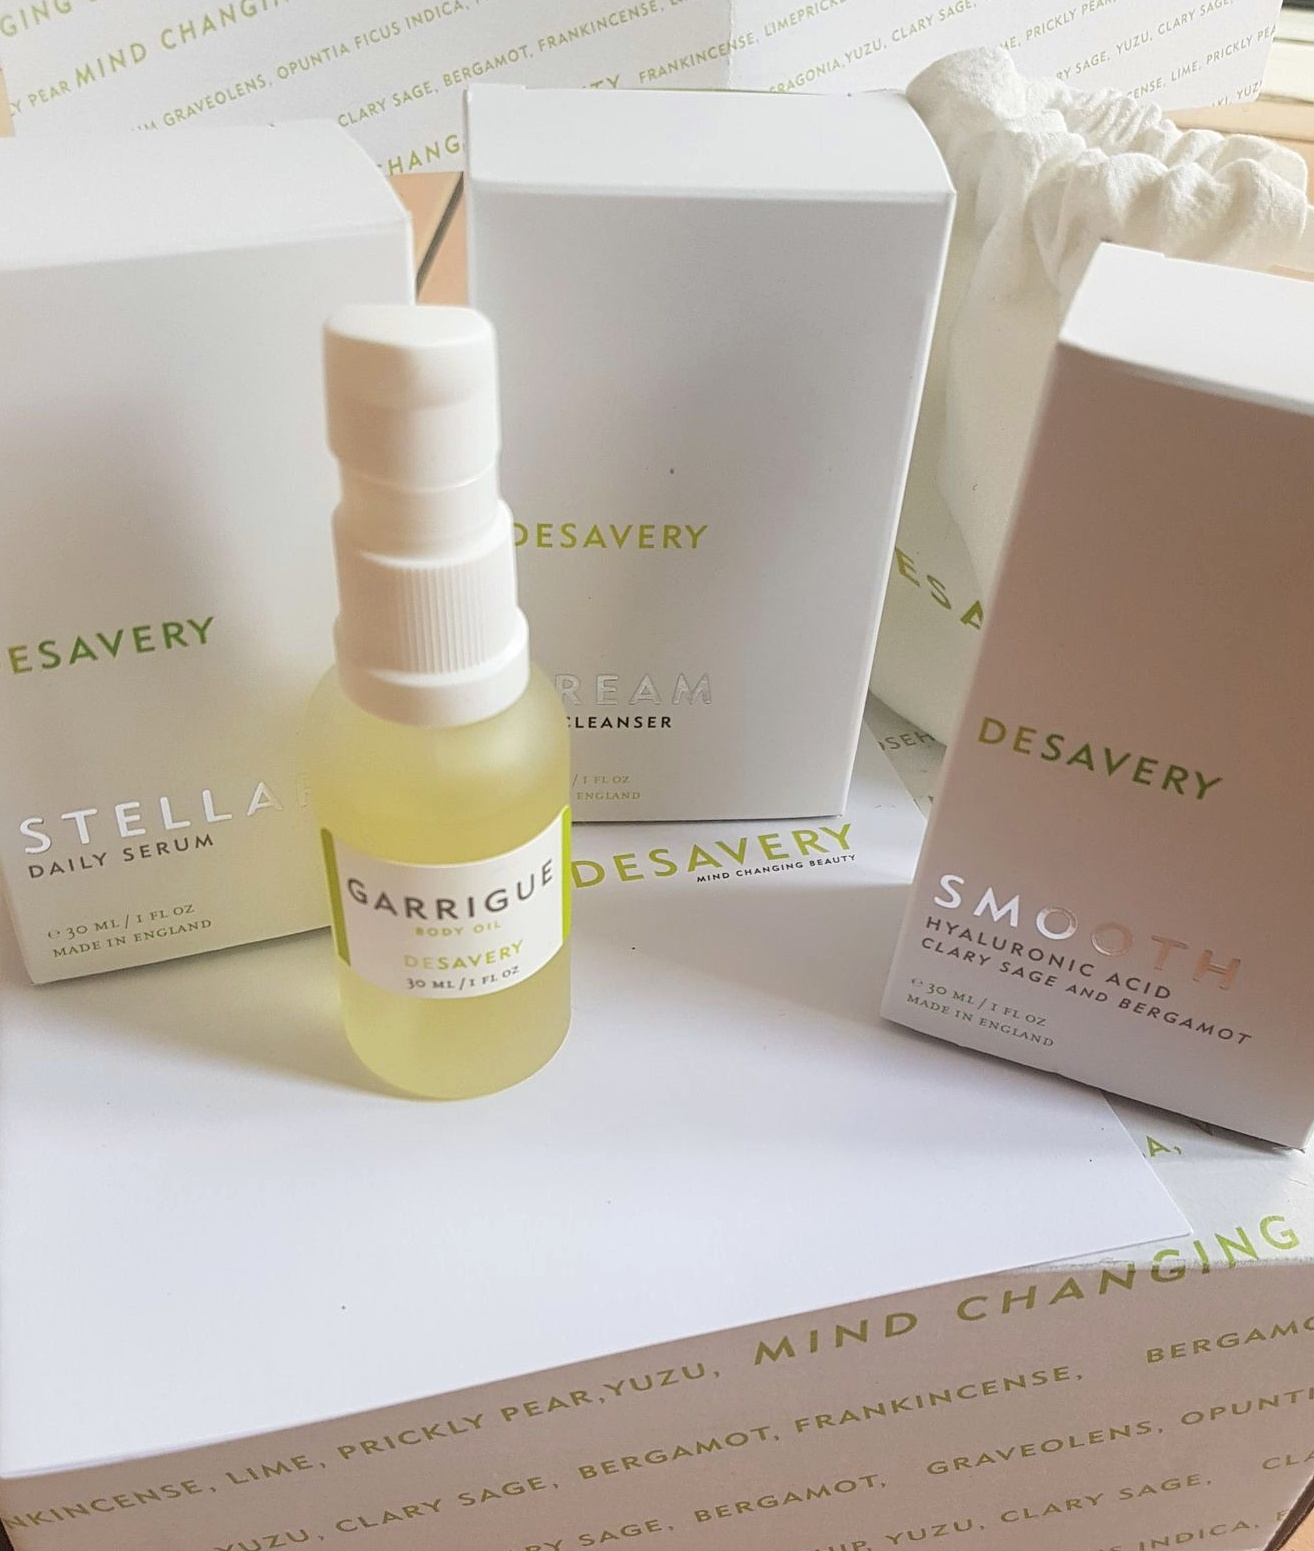 a selection of Desavery Skincare products including Stellar Daily Serum, Garrigue Body Oil, Dream Oil Cleanser, and Smooth Hyaluronic Acid all on a white box